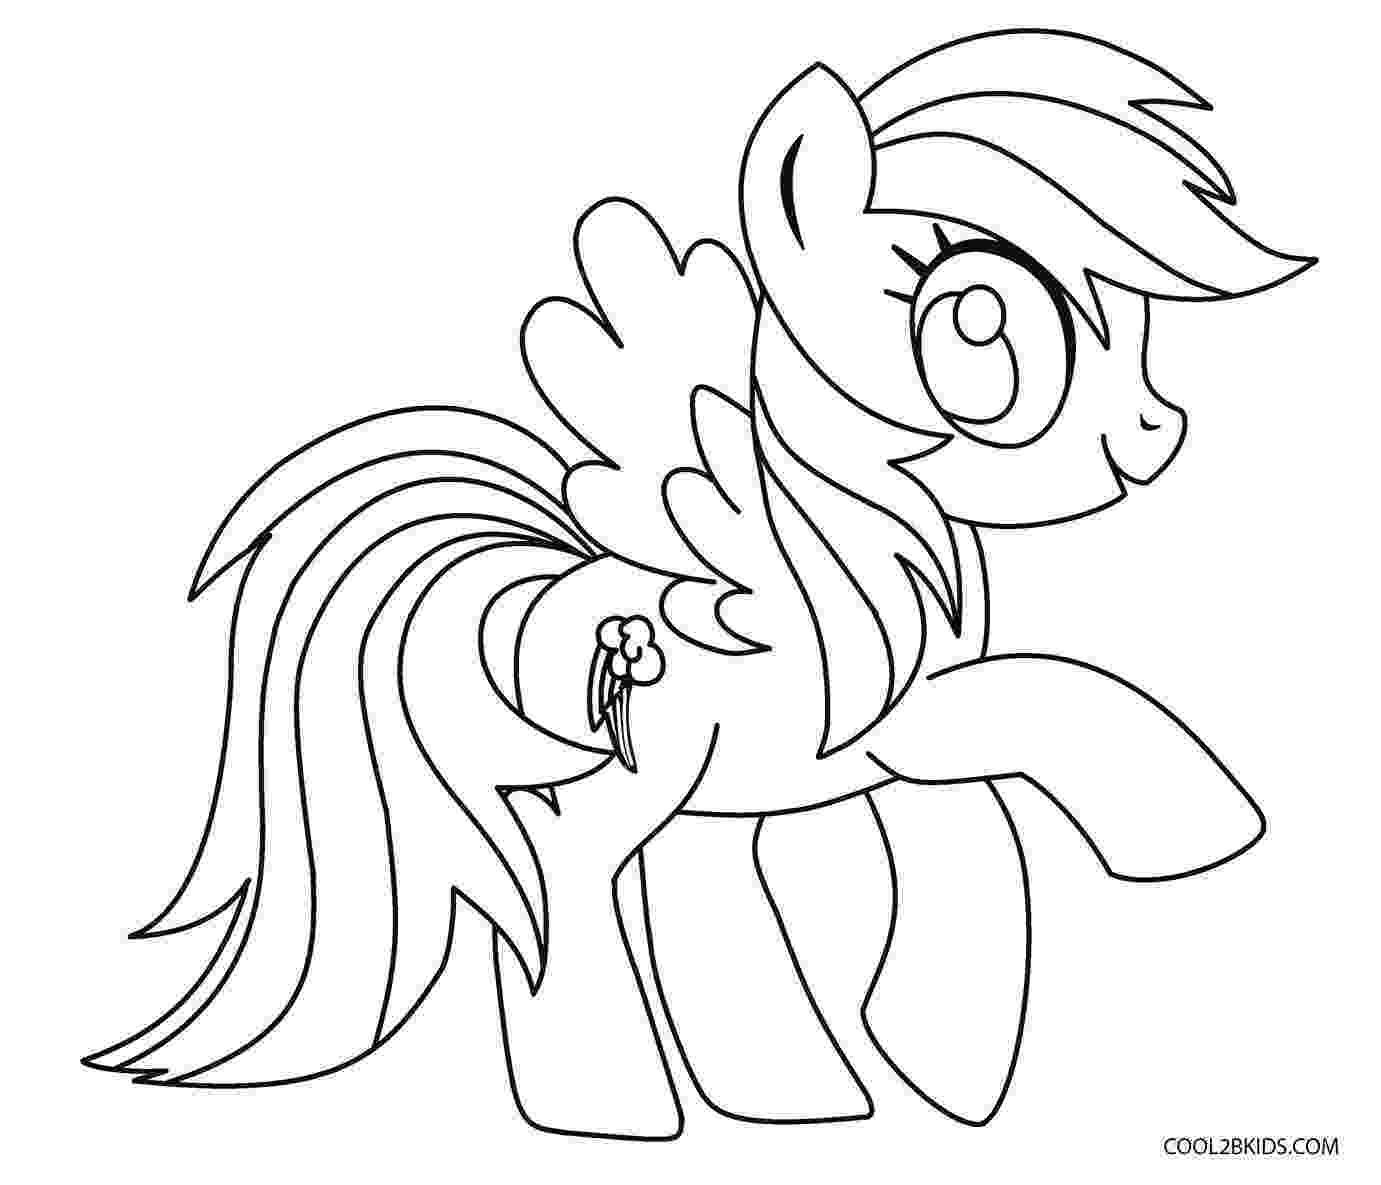 my little pony friendship is magic coloring pages rainbow dash 32 my little pony friendship is magic coloring pages friendship coloring little magic rainbow dash pony is my pages